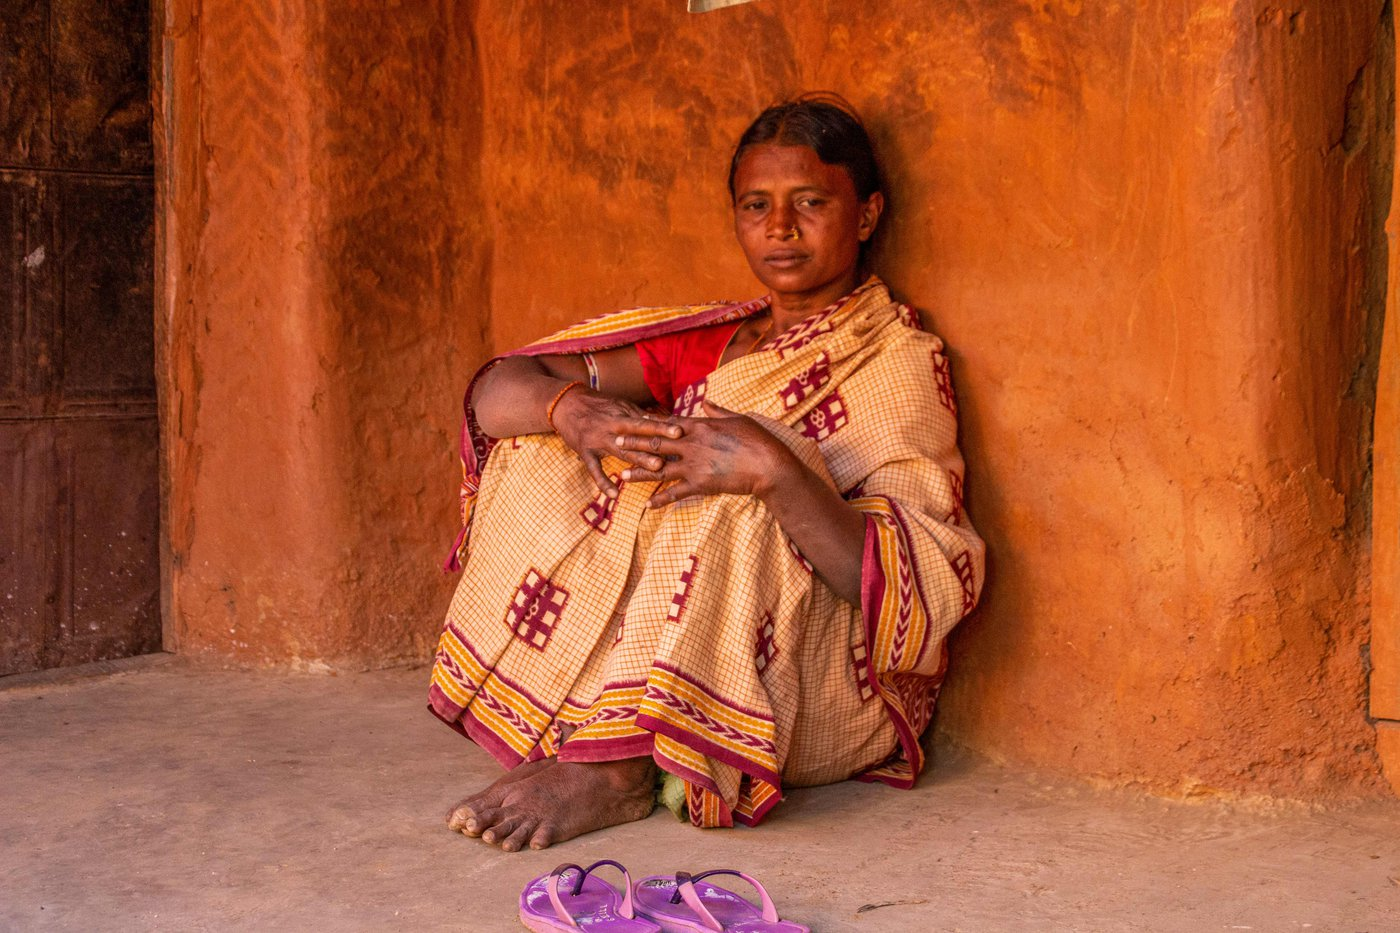 Supari Putel, a daily wage labourer from Odisha's Balangir district, lost her husband and son within four months in 2019, and has since struggled with sorrow, never-receding debt, and an incomplete house